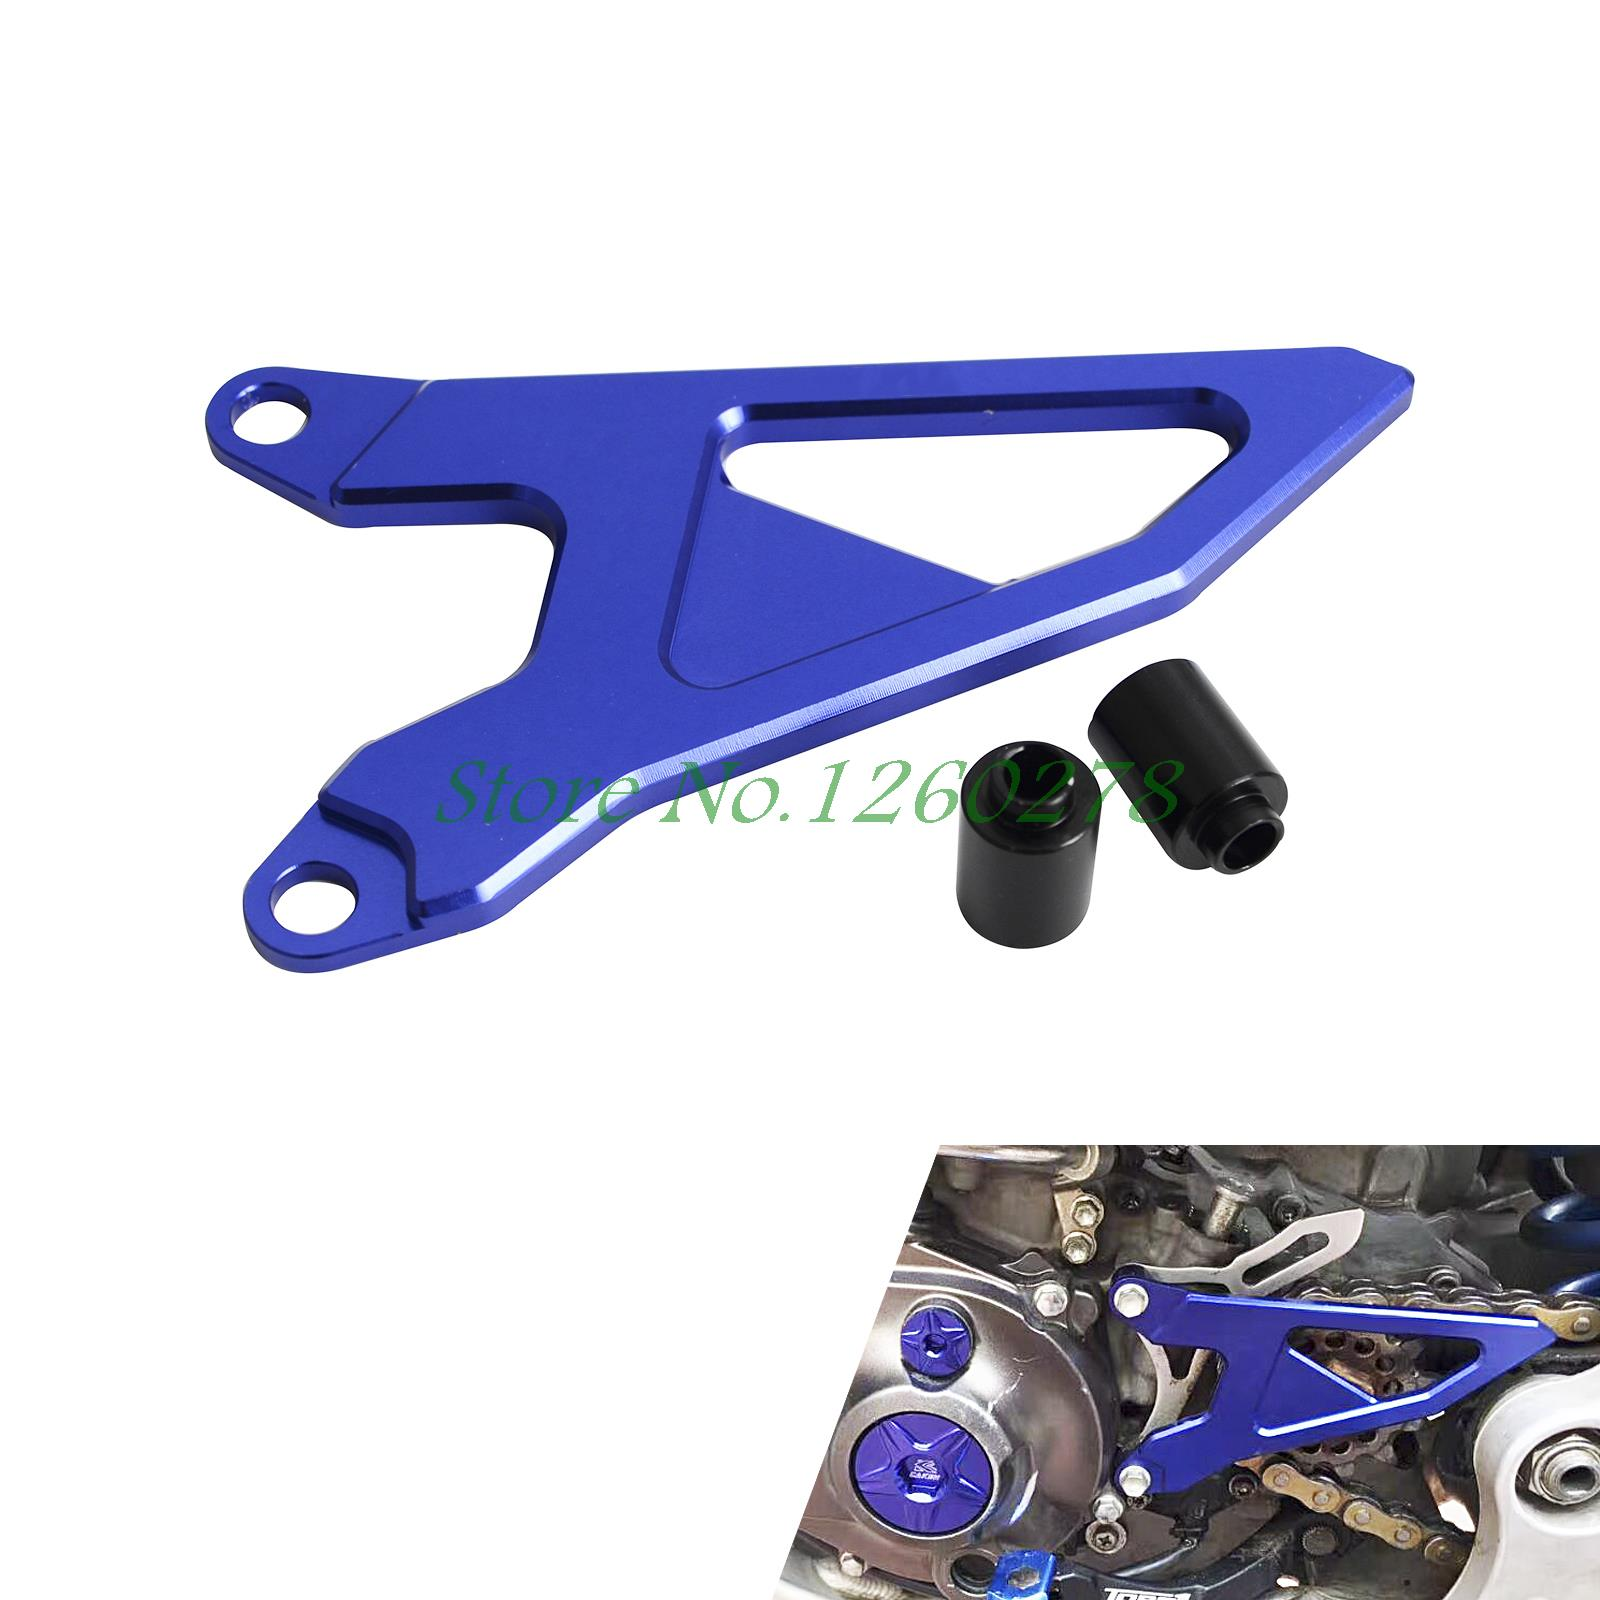 CNC Billet Aluminum Front Sprocket Cover For Yamaha  YZ250F YZ450F  2014 2015 2016